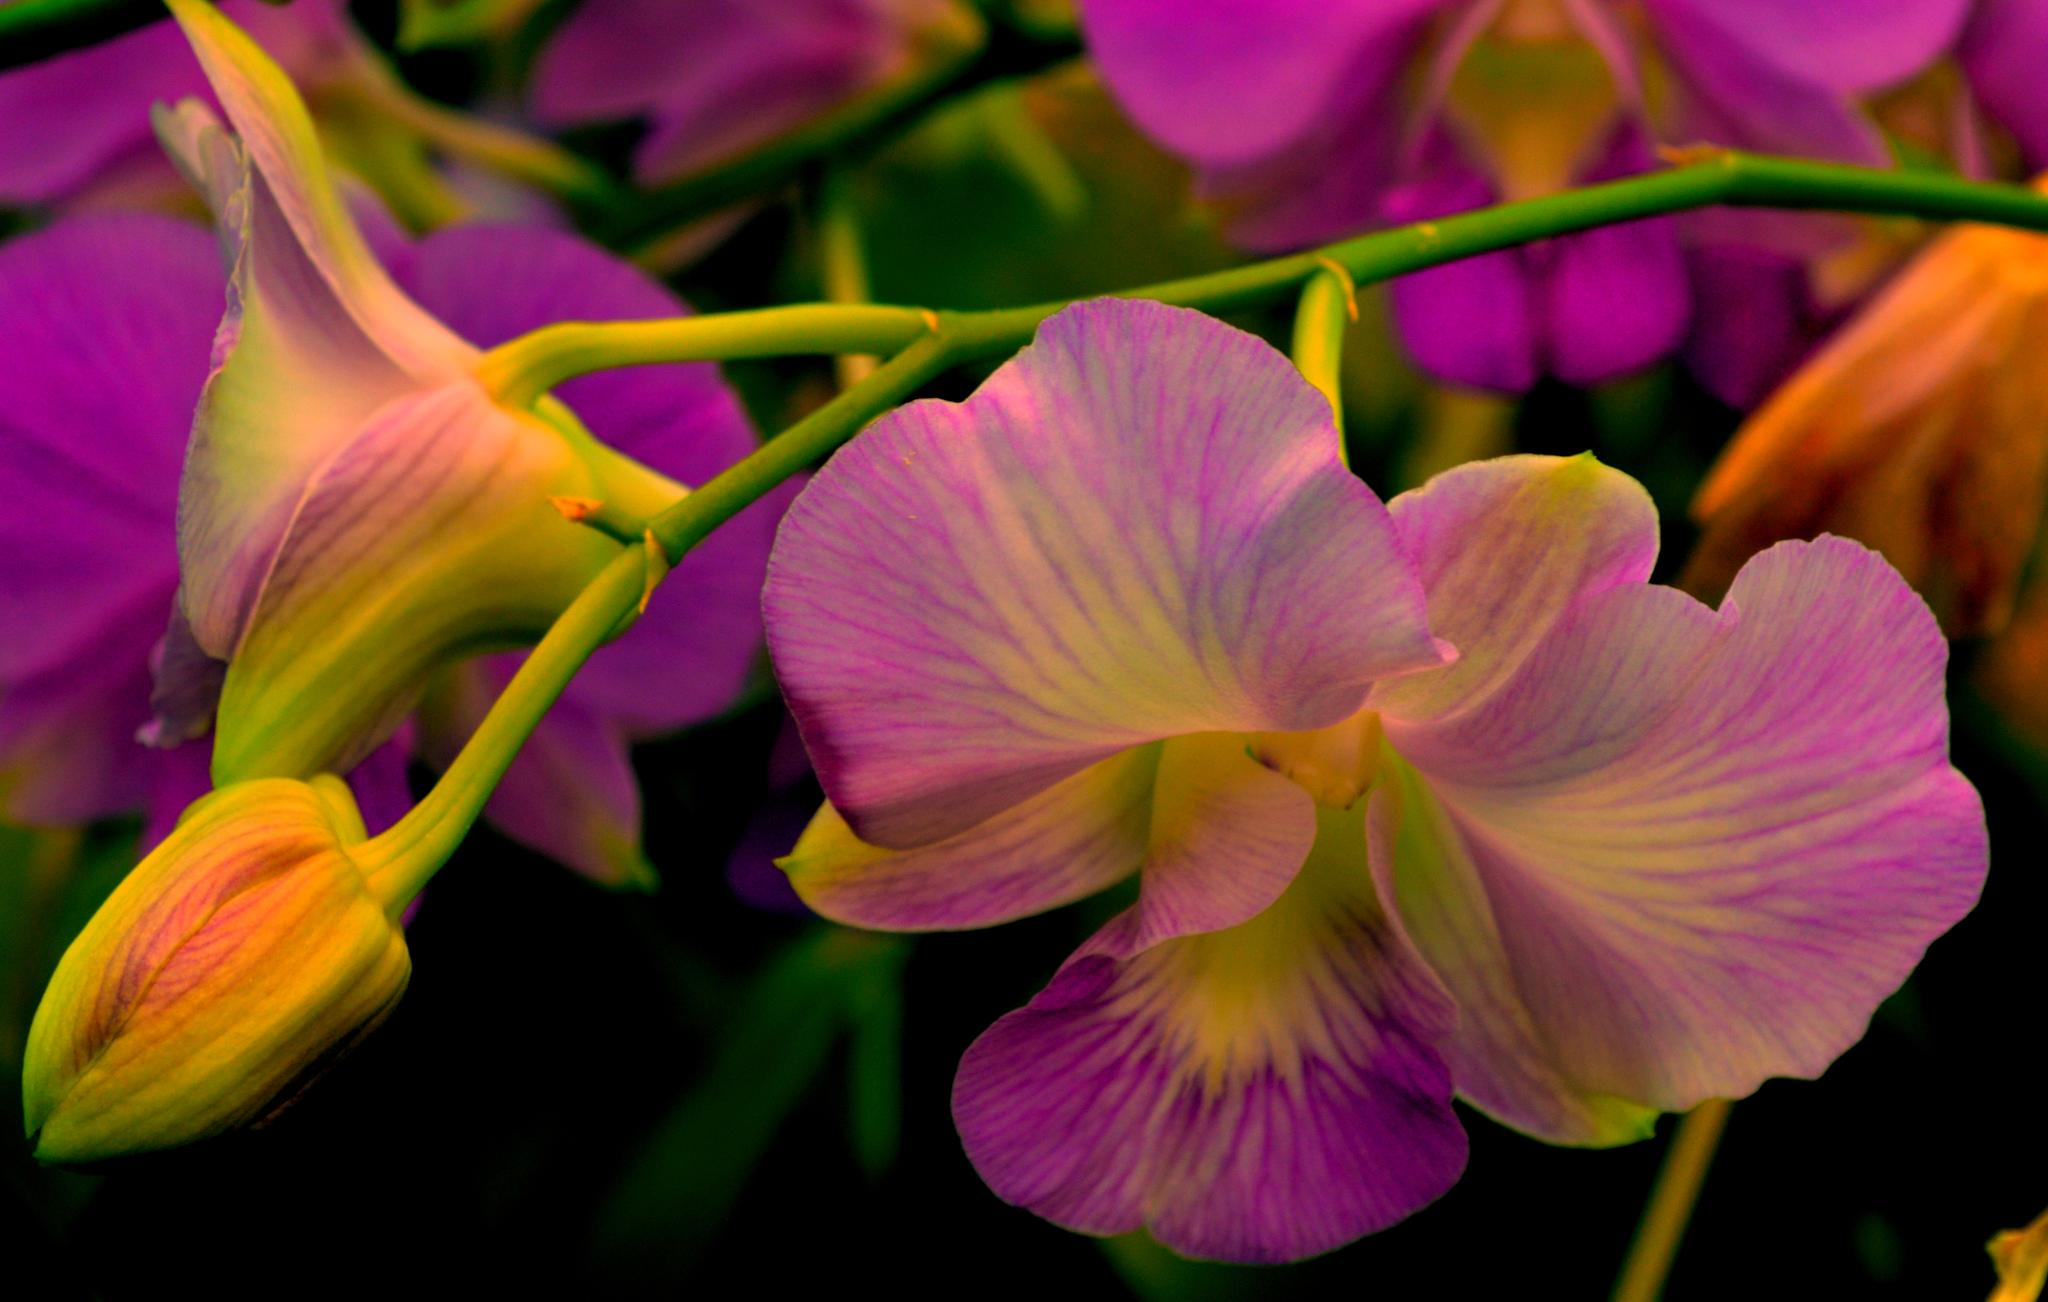 Orchid by wilson.dsouza.7161953